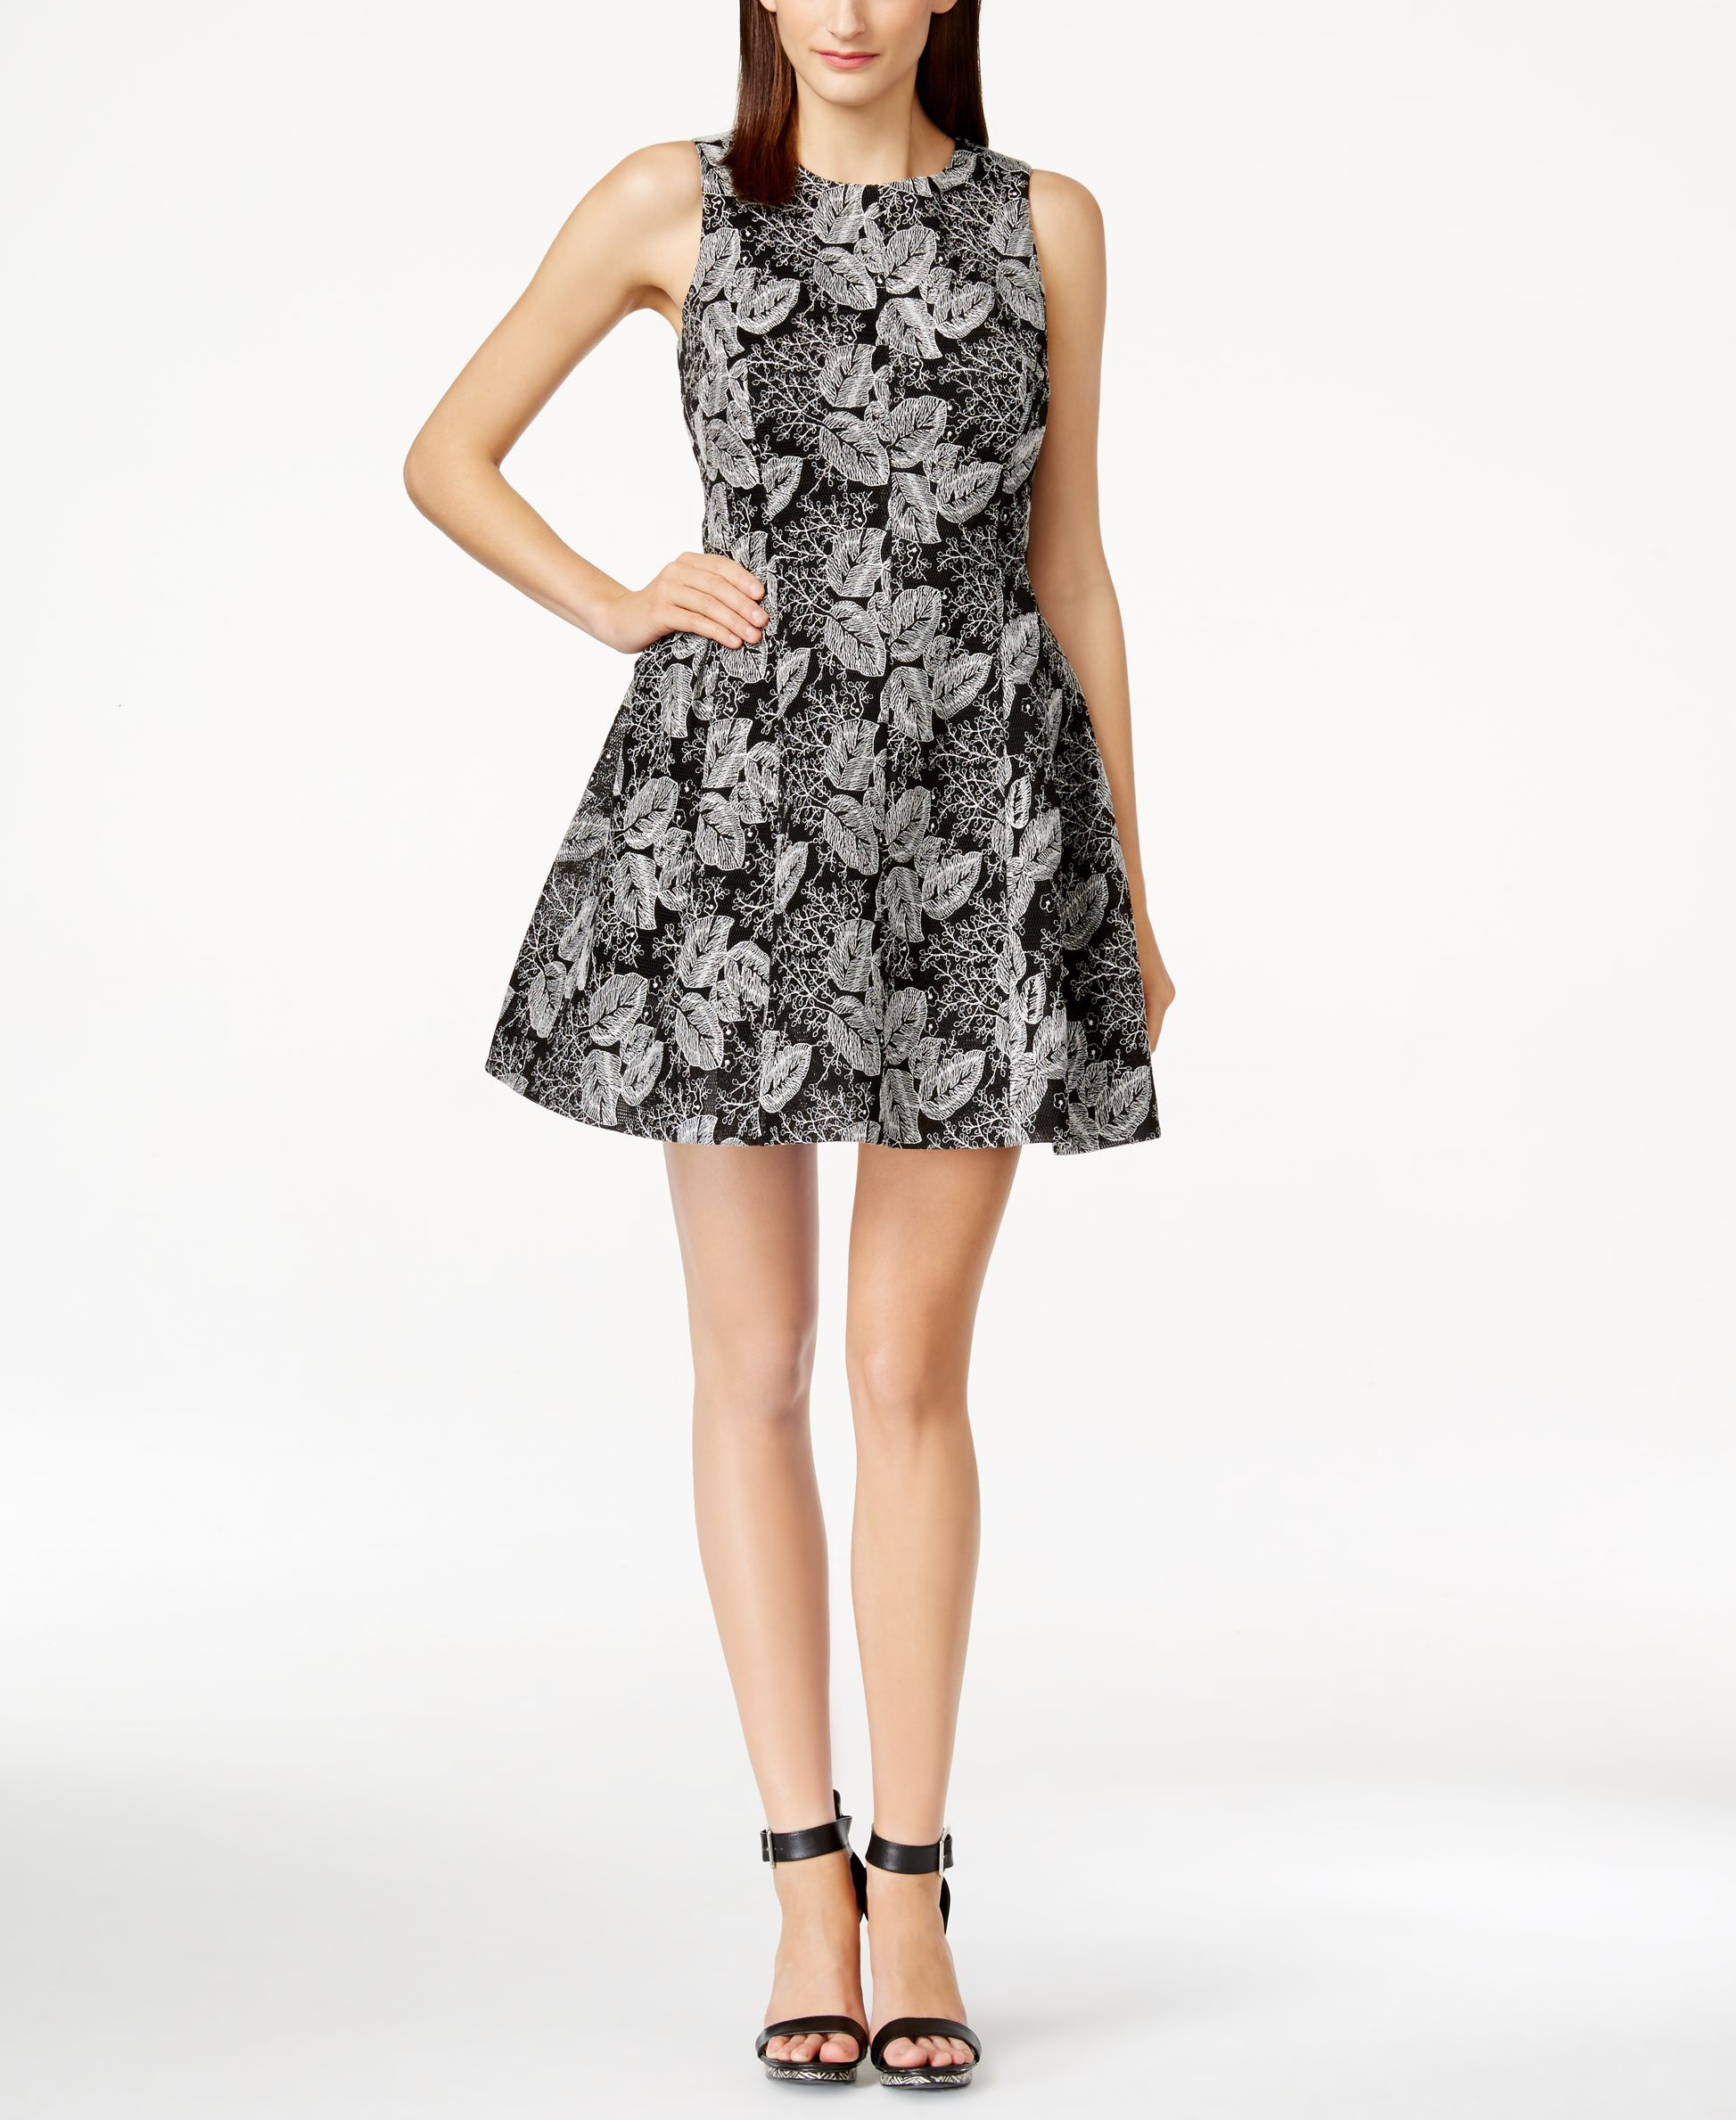 Calvin Klein Botanical Mesh Fit and Flare Dress | Flare